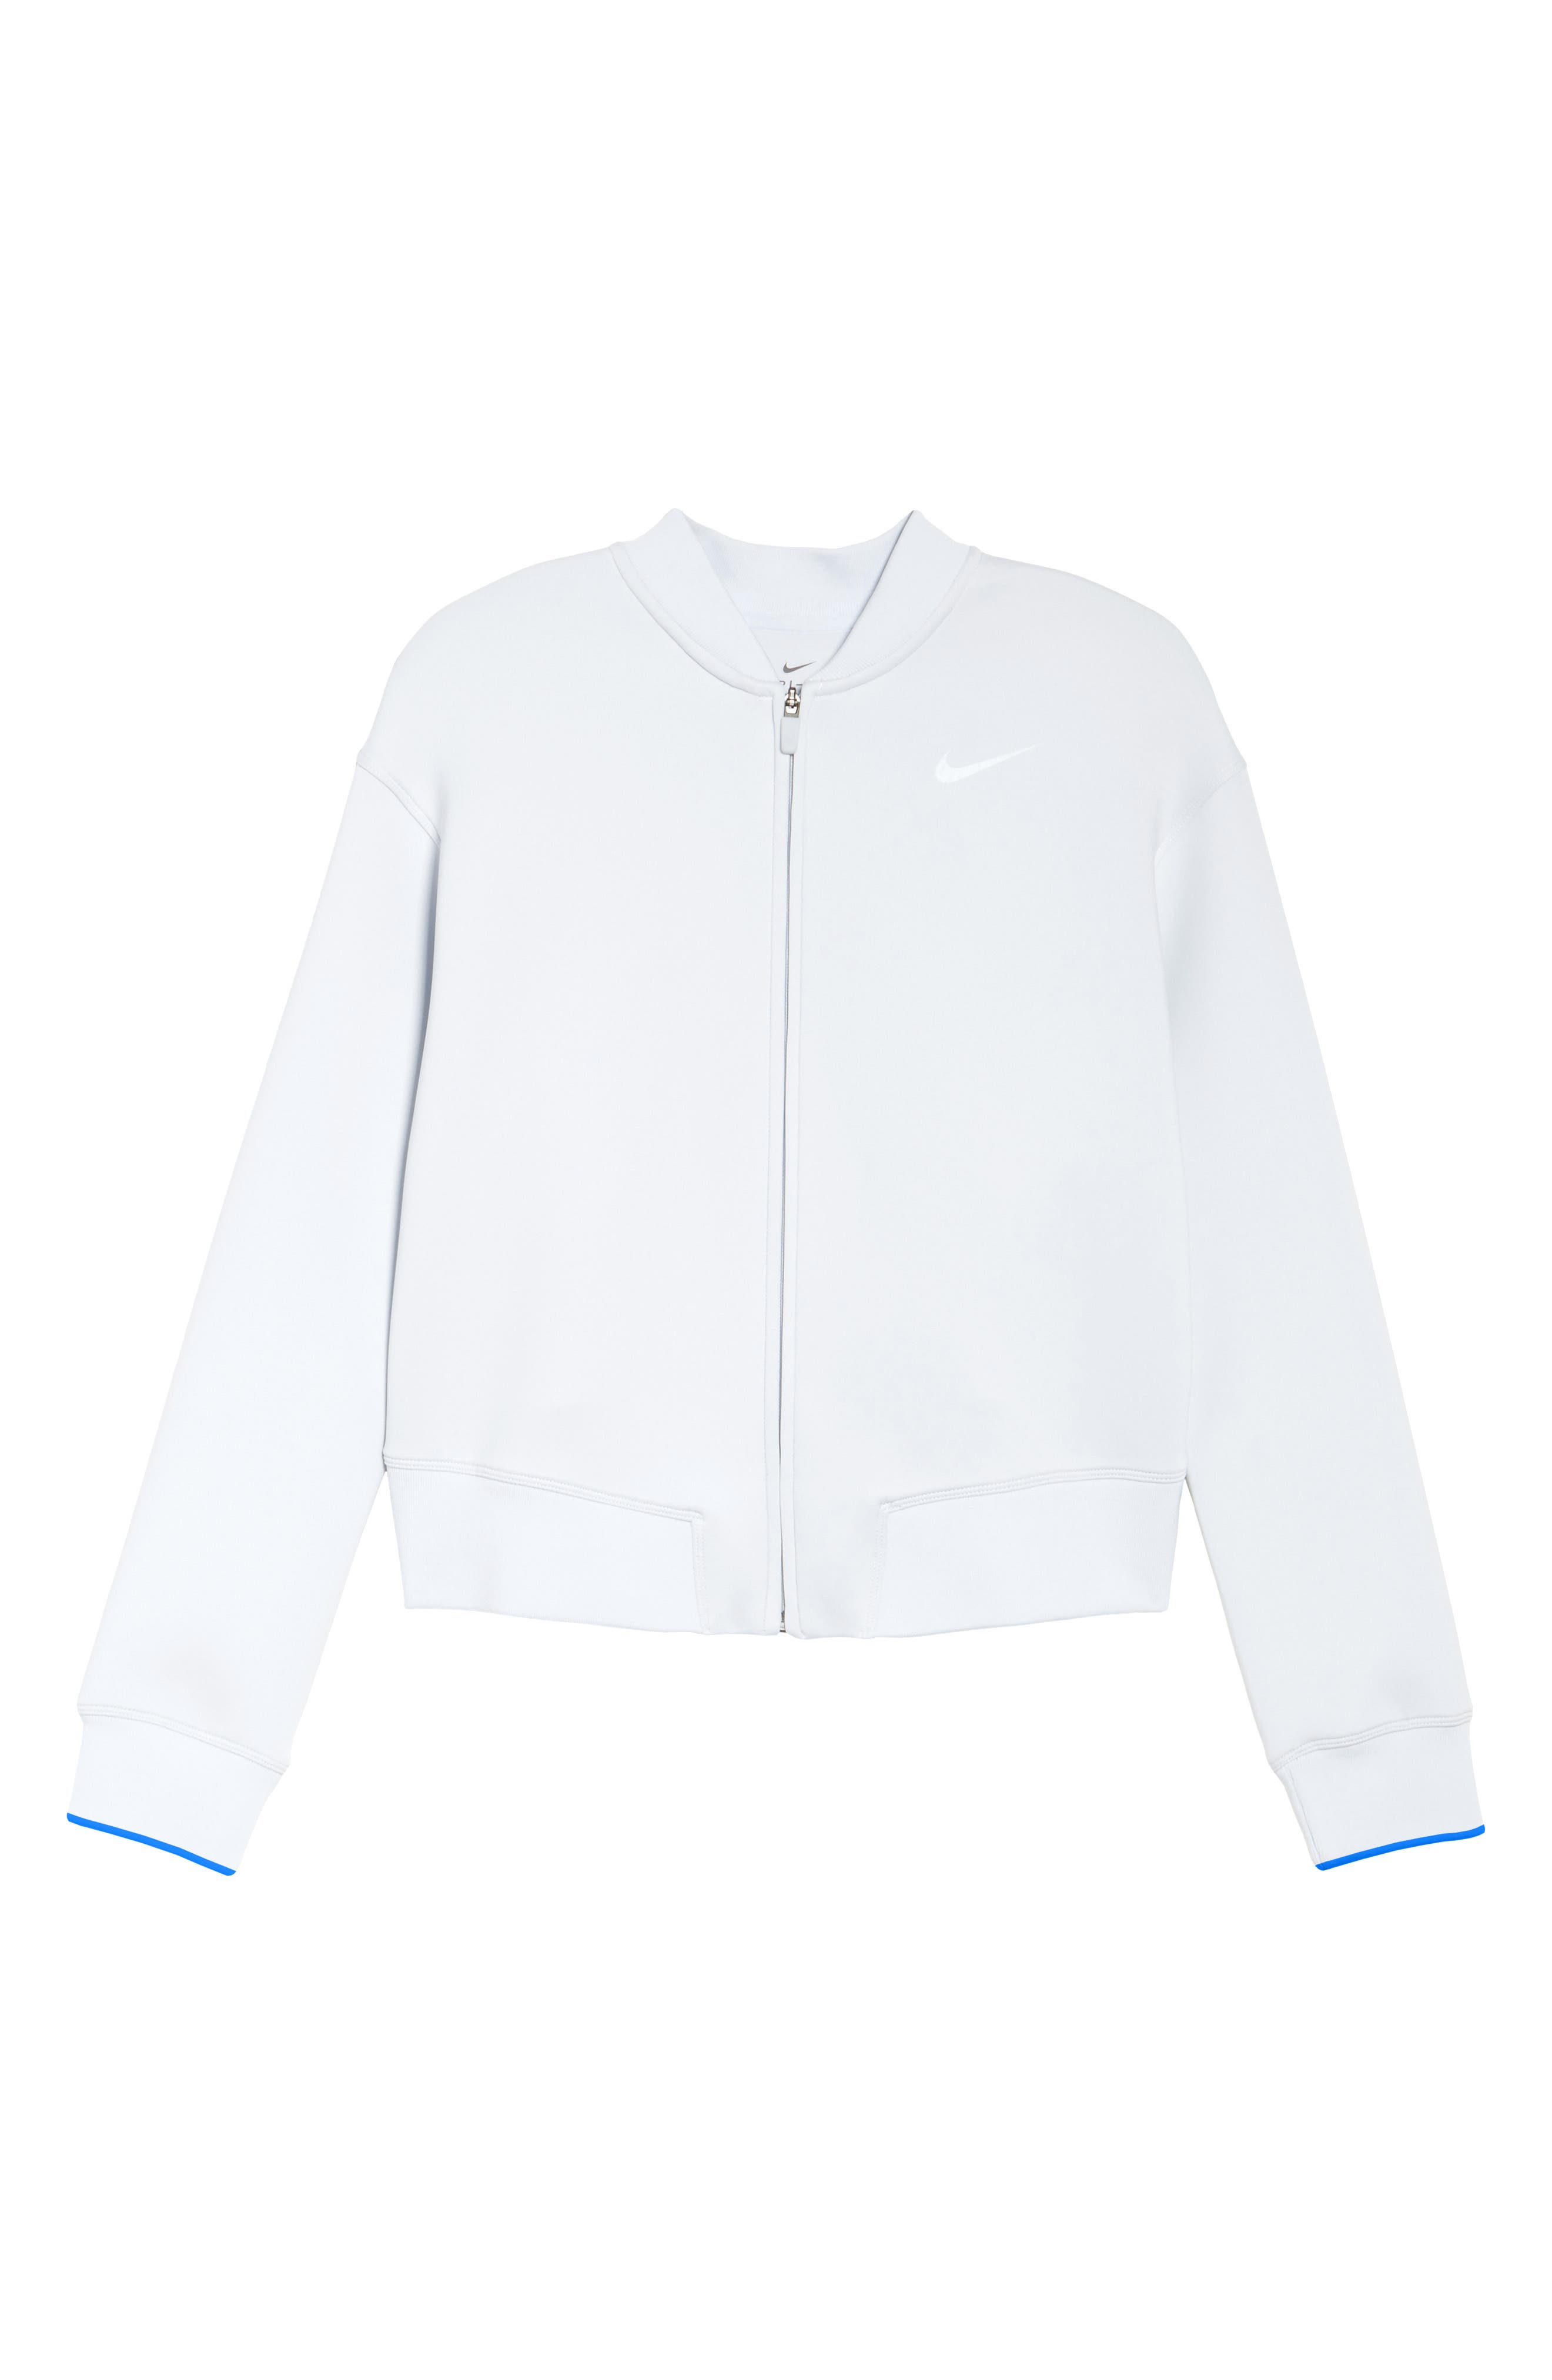 Therma Sphere Max Training Jacket,                             Alternate thumbnail 15, color,